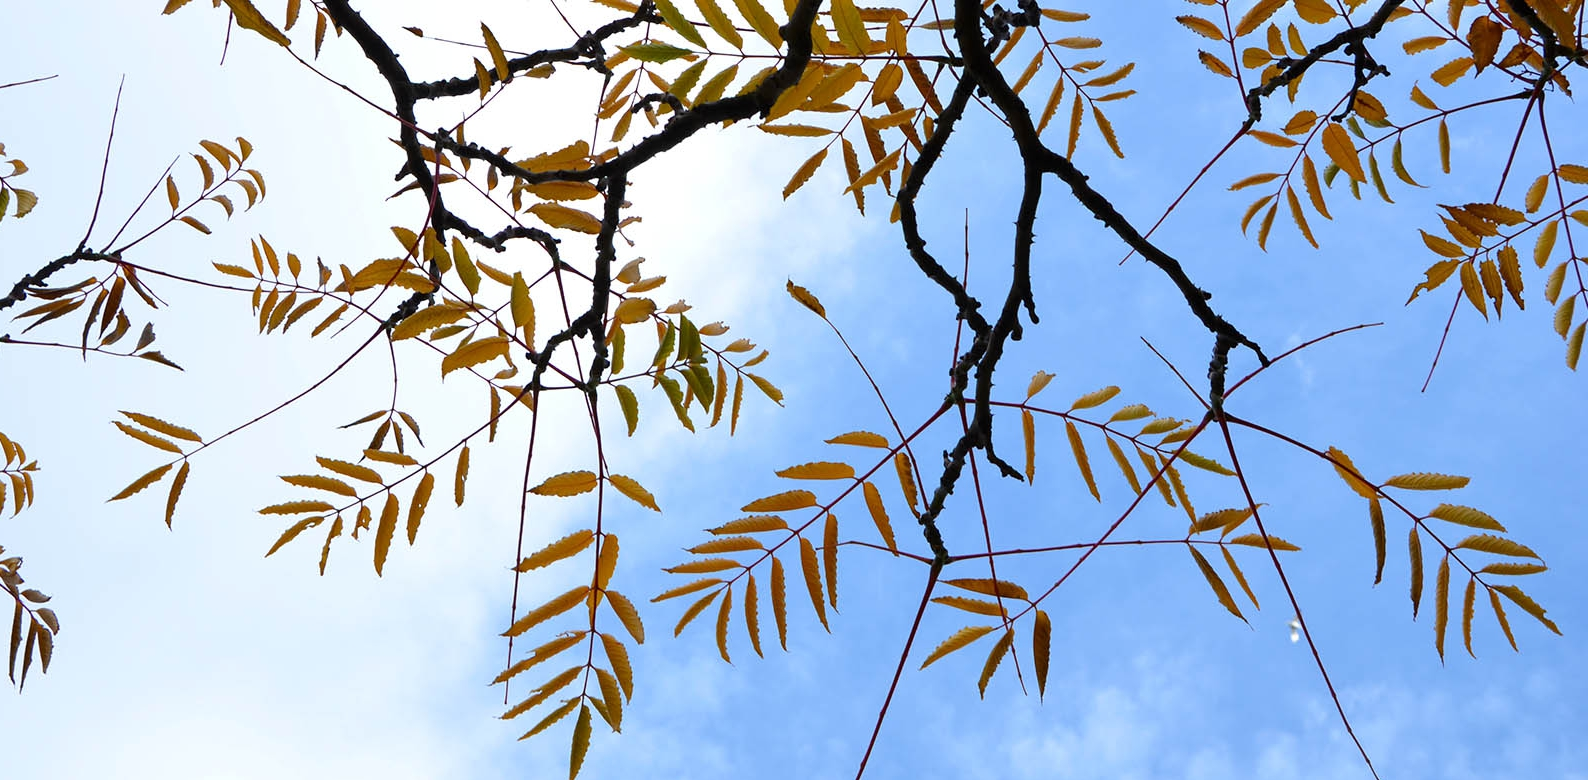 Zanthoxylum ailanthoides - Japanese Gardens, RTBG - Autumn 2013 looking into the blue sky above